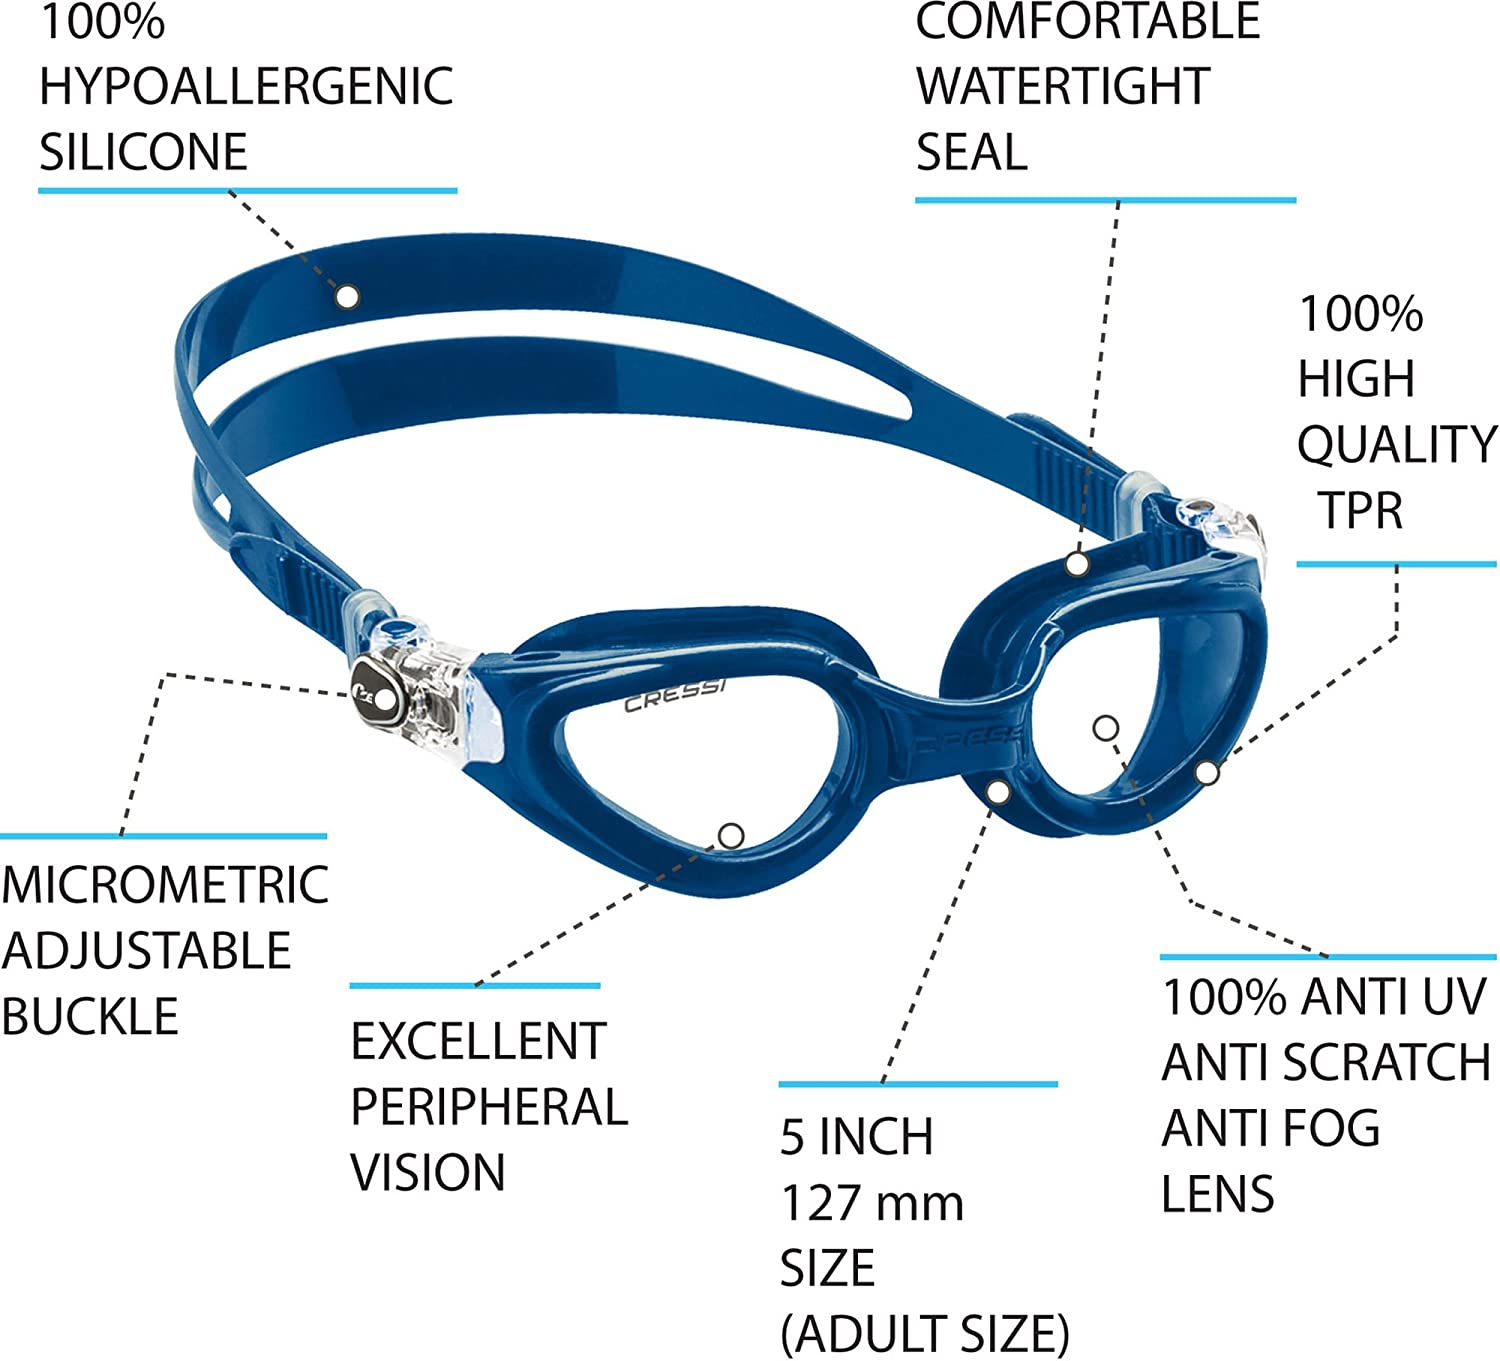 5.11 Tactical Series Right Gafas, Unisex Adulto, Azul Nery, Talla única: Amazon.es: Deportes y aire libre